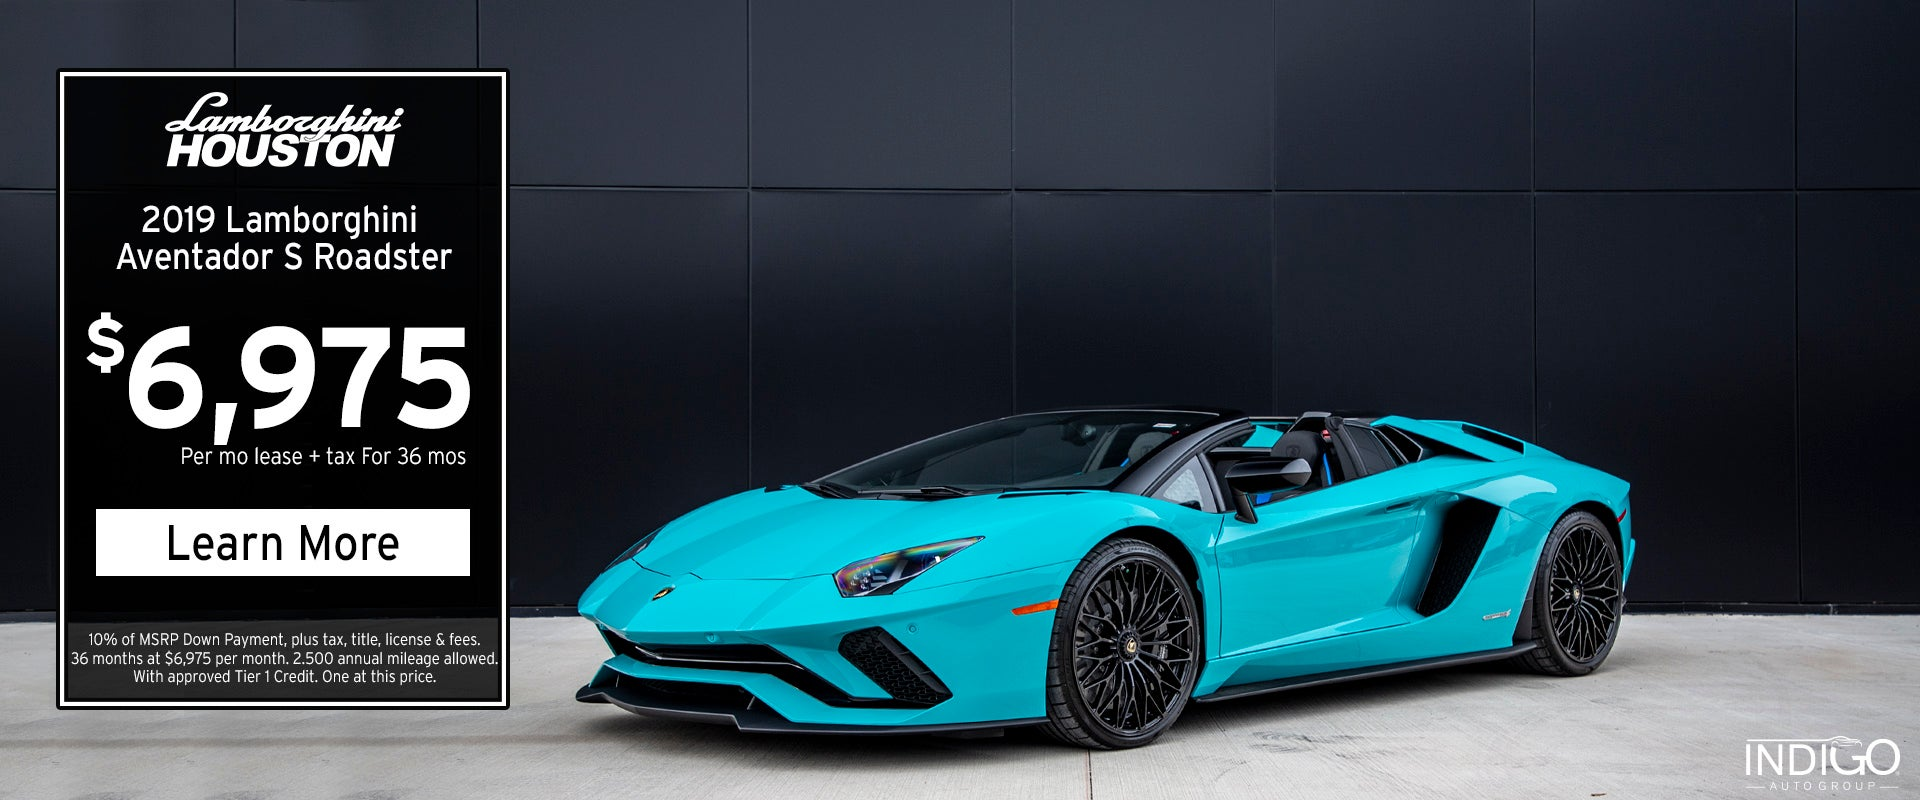 New Pre Owned Lamborghini Cars Lamborghini Houston Houston Tx